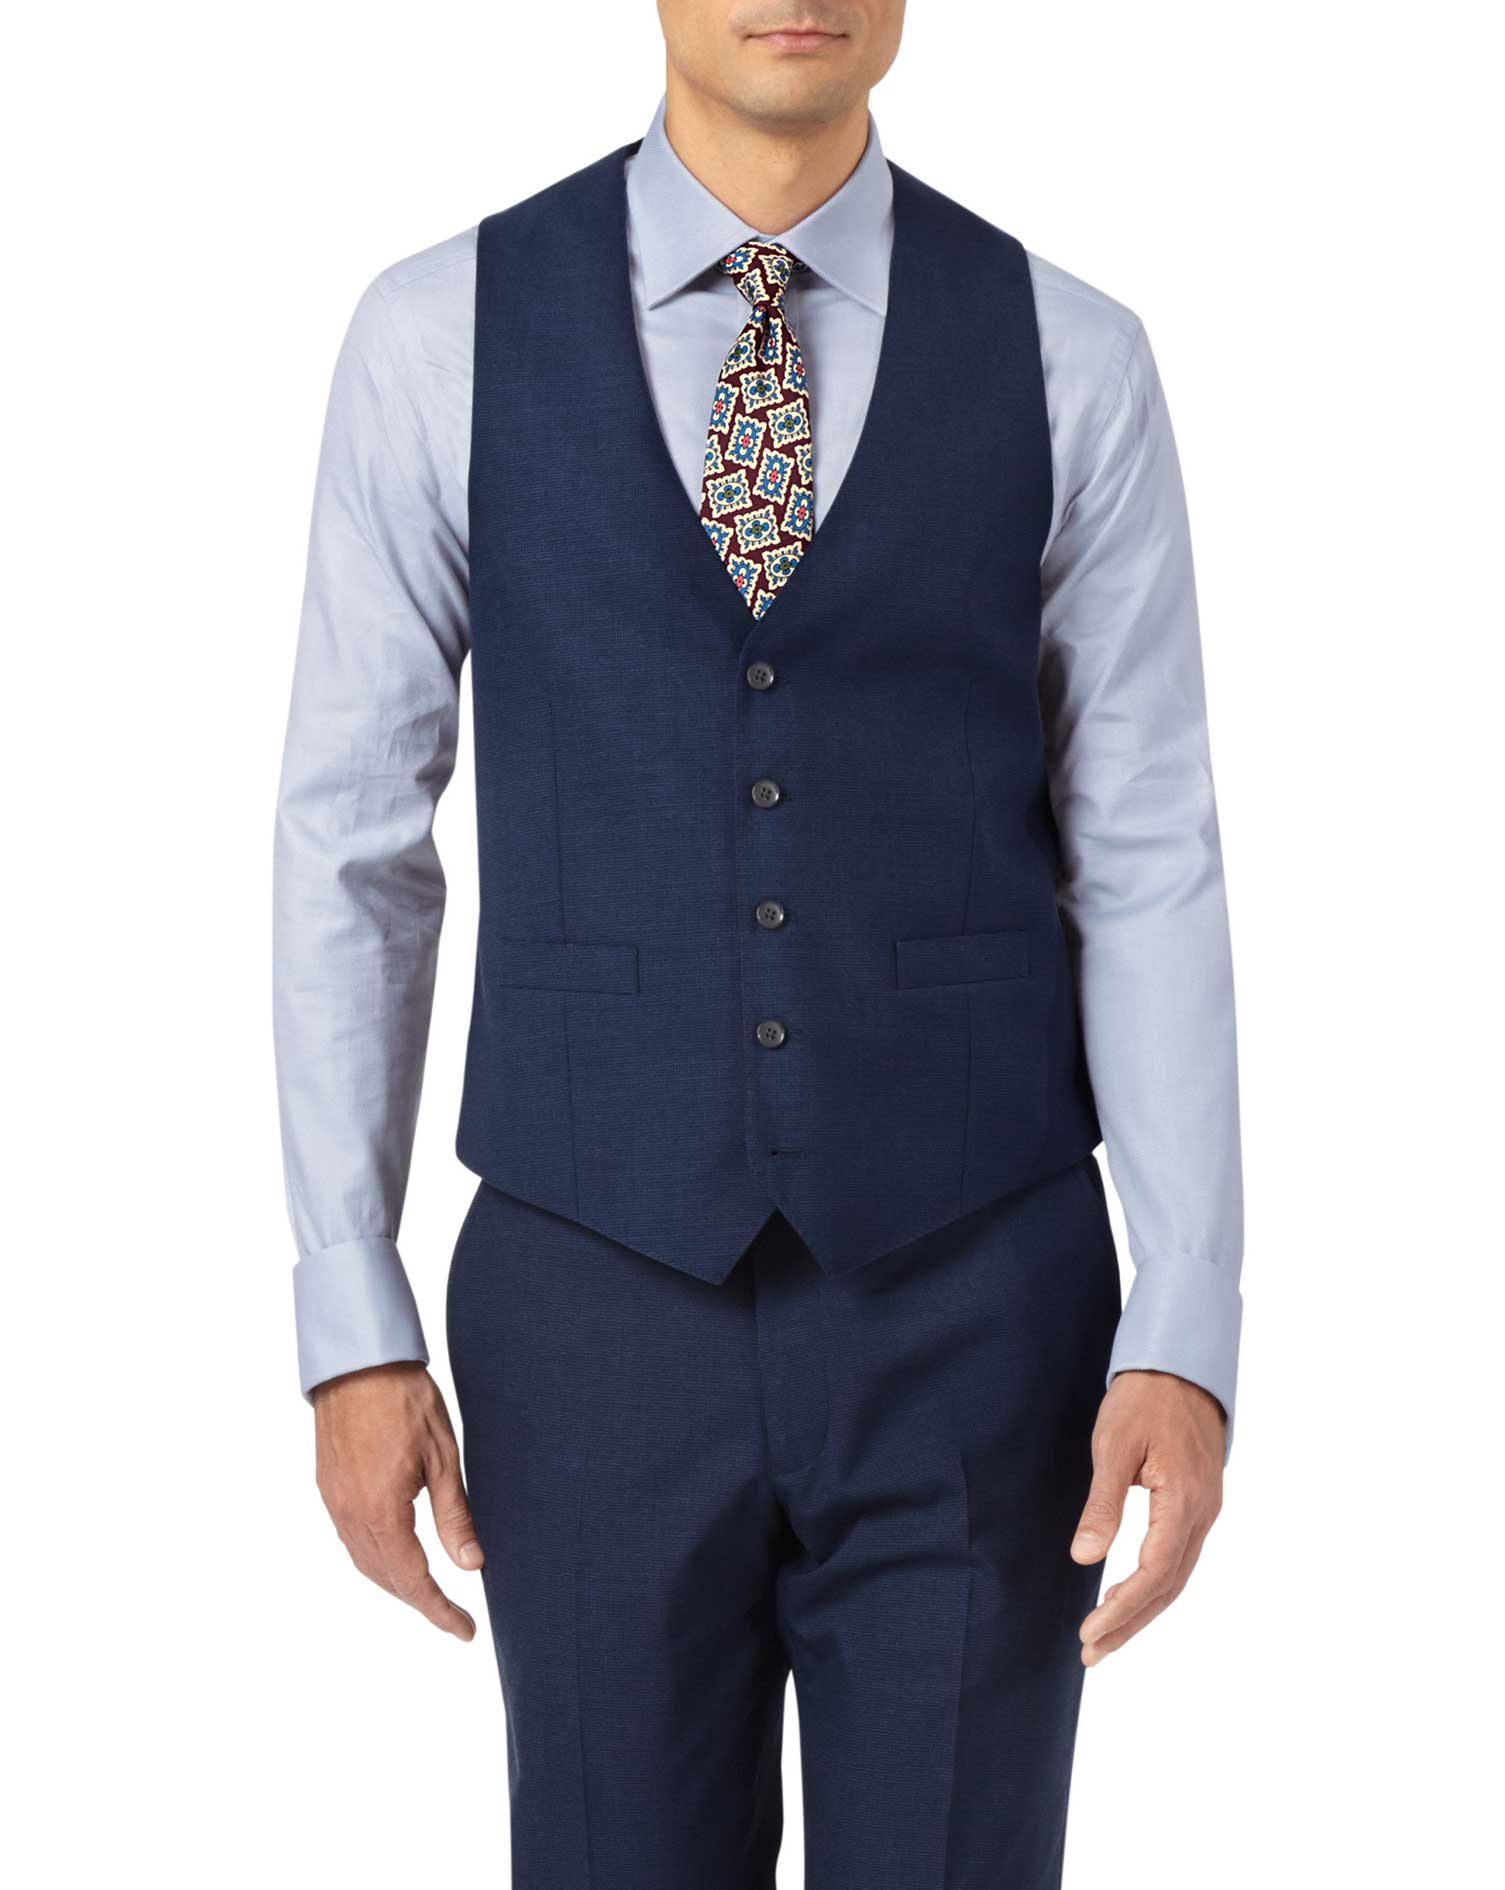 Indigo Blue Adjustable Fit Panama Puppytooth Business Suit Wool Waistcoat Size w48 by Charles Tyrwhi